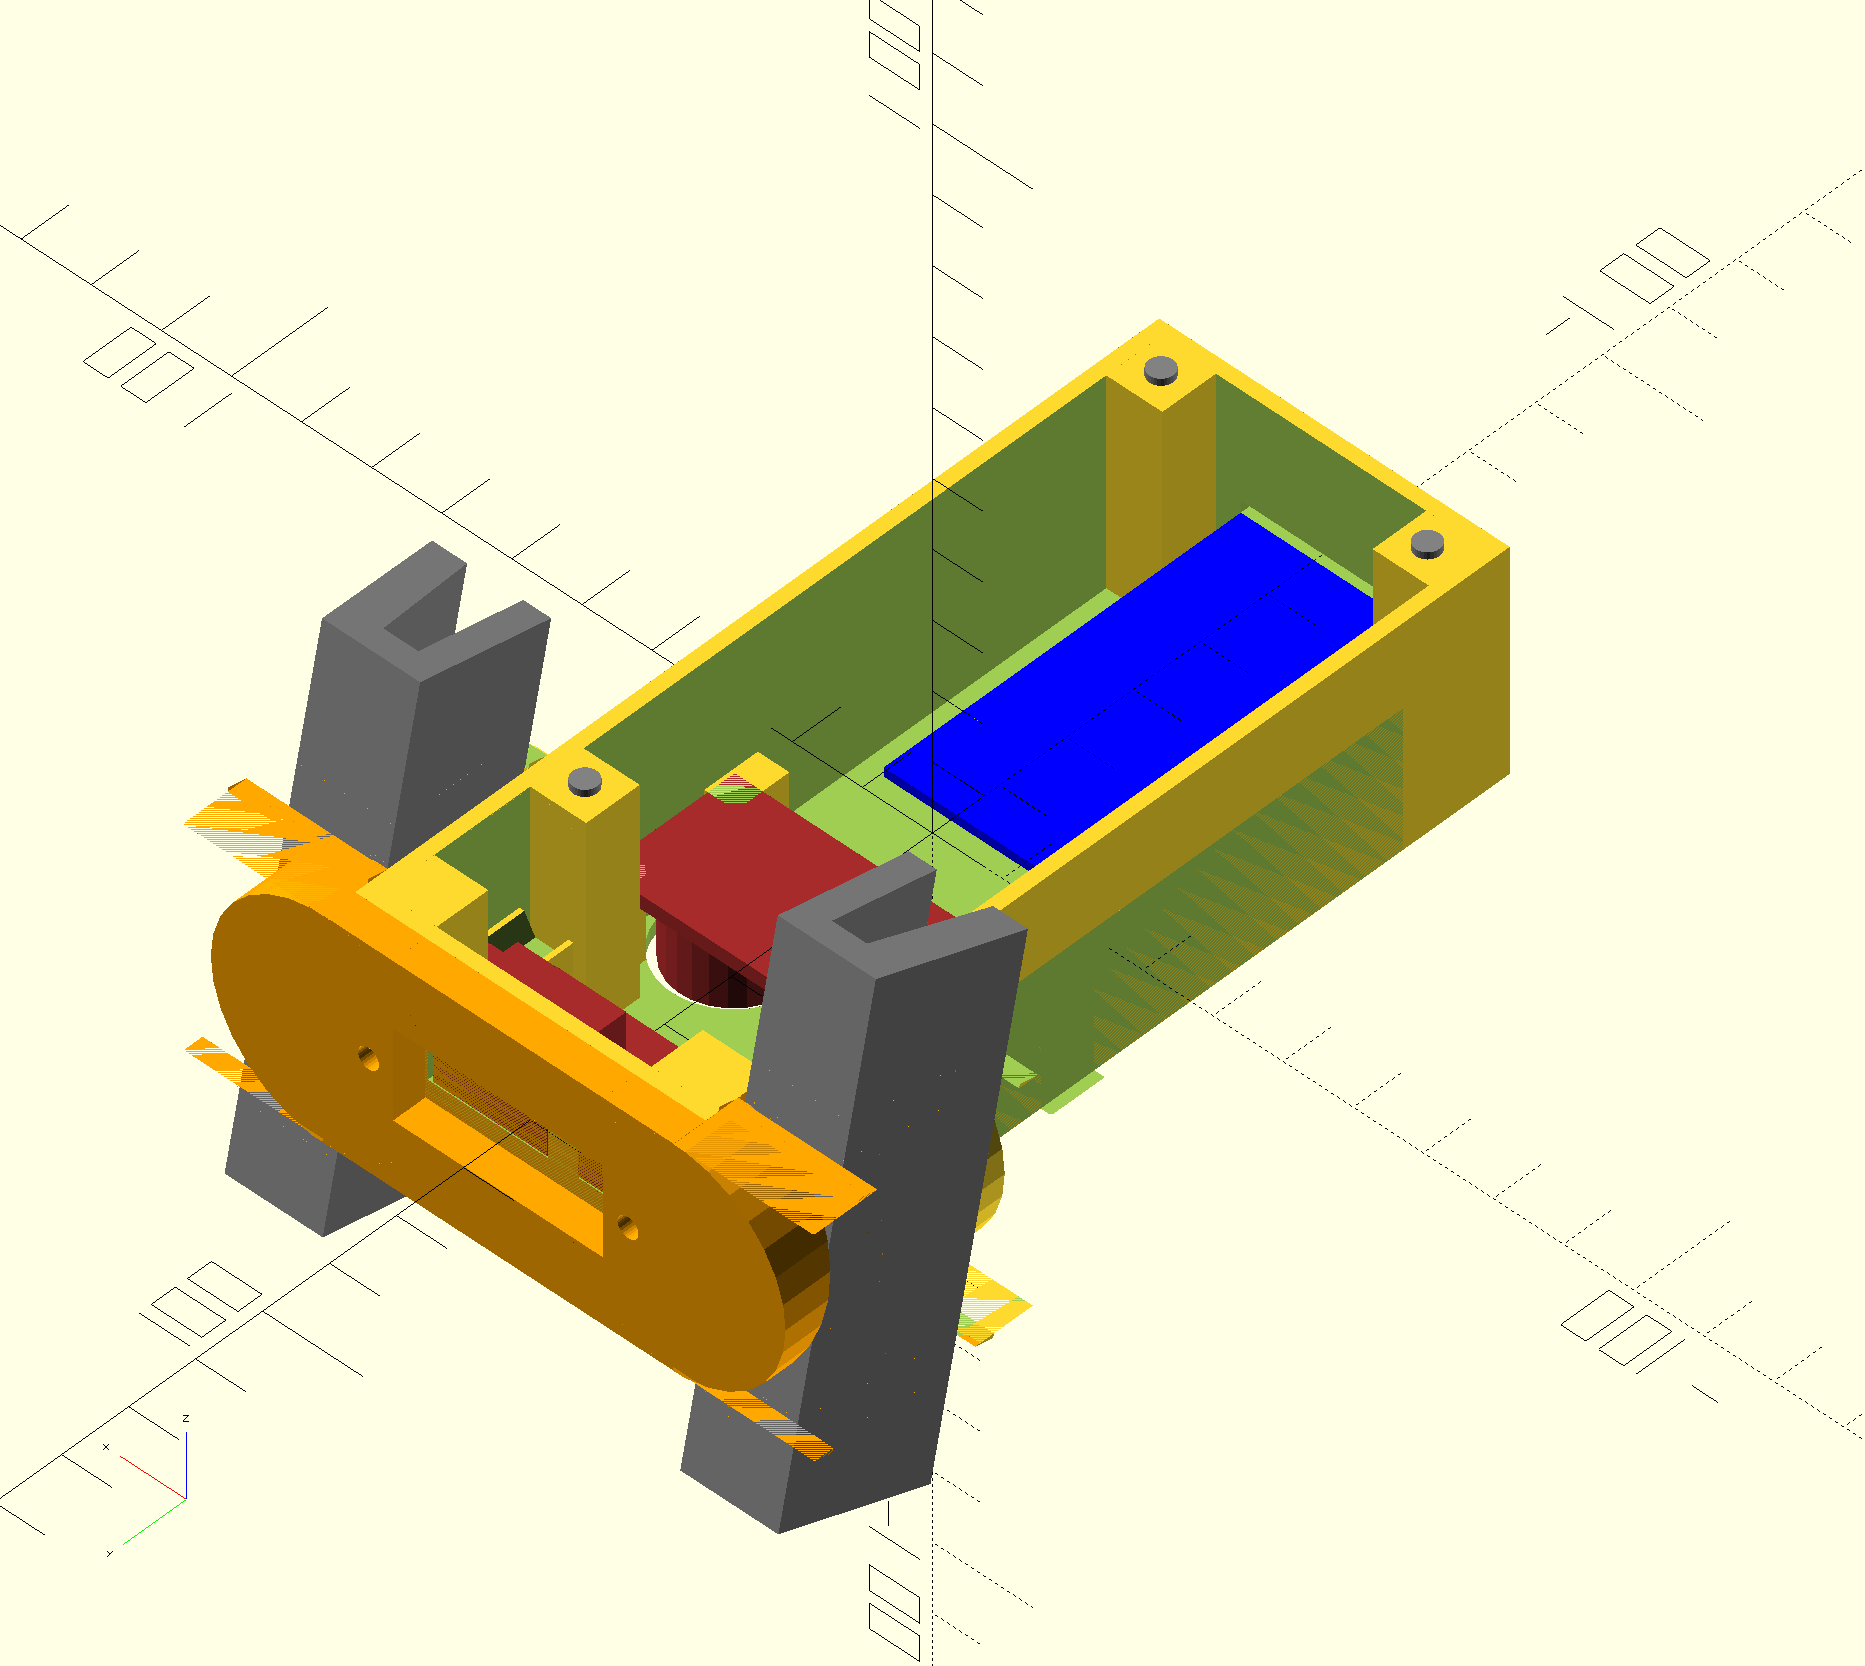 openscad render (with lots of artifacts)